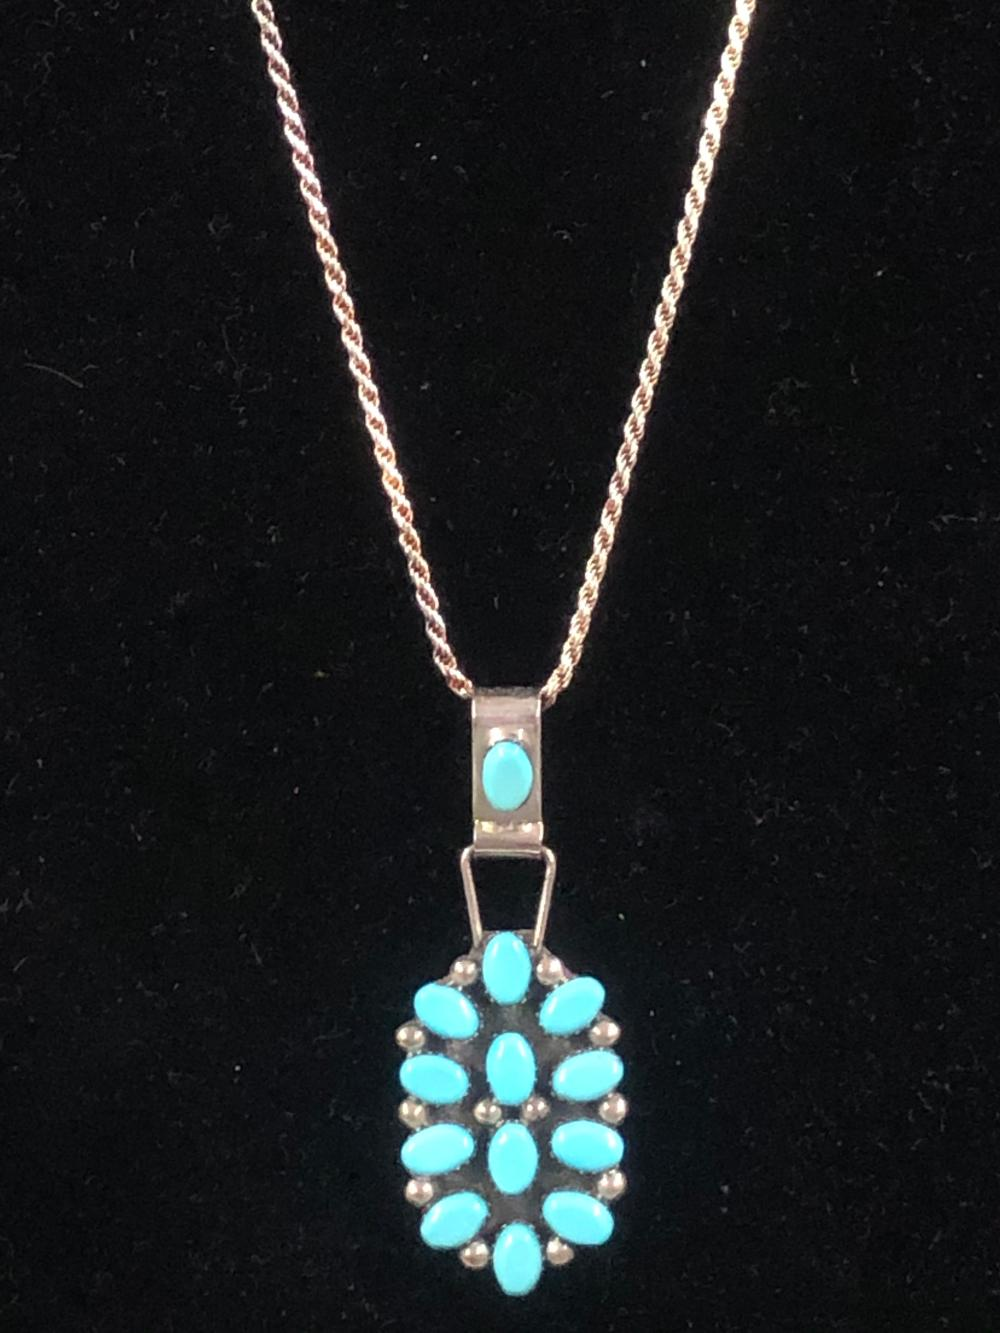 Turquoise inlay sterling silver pendant